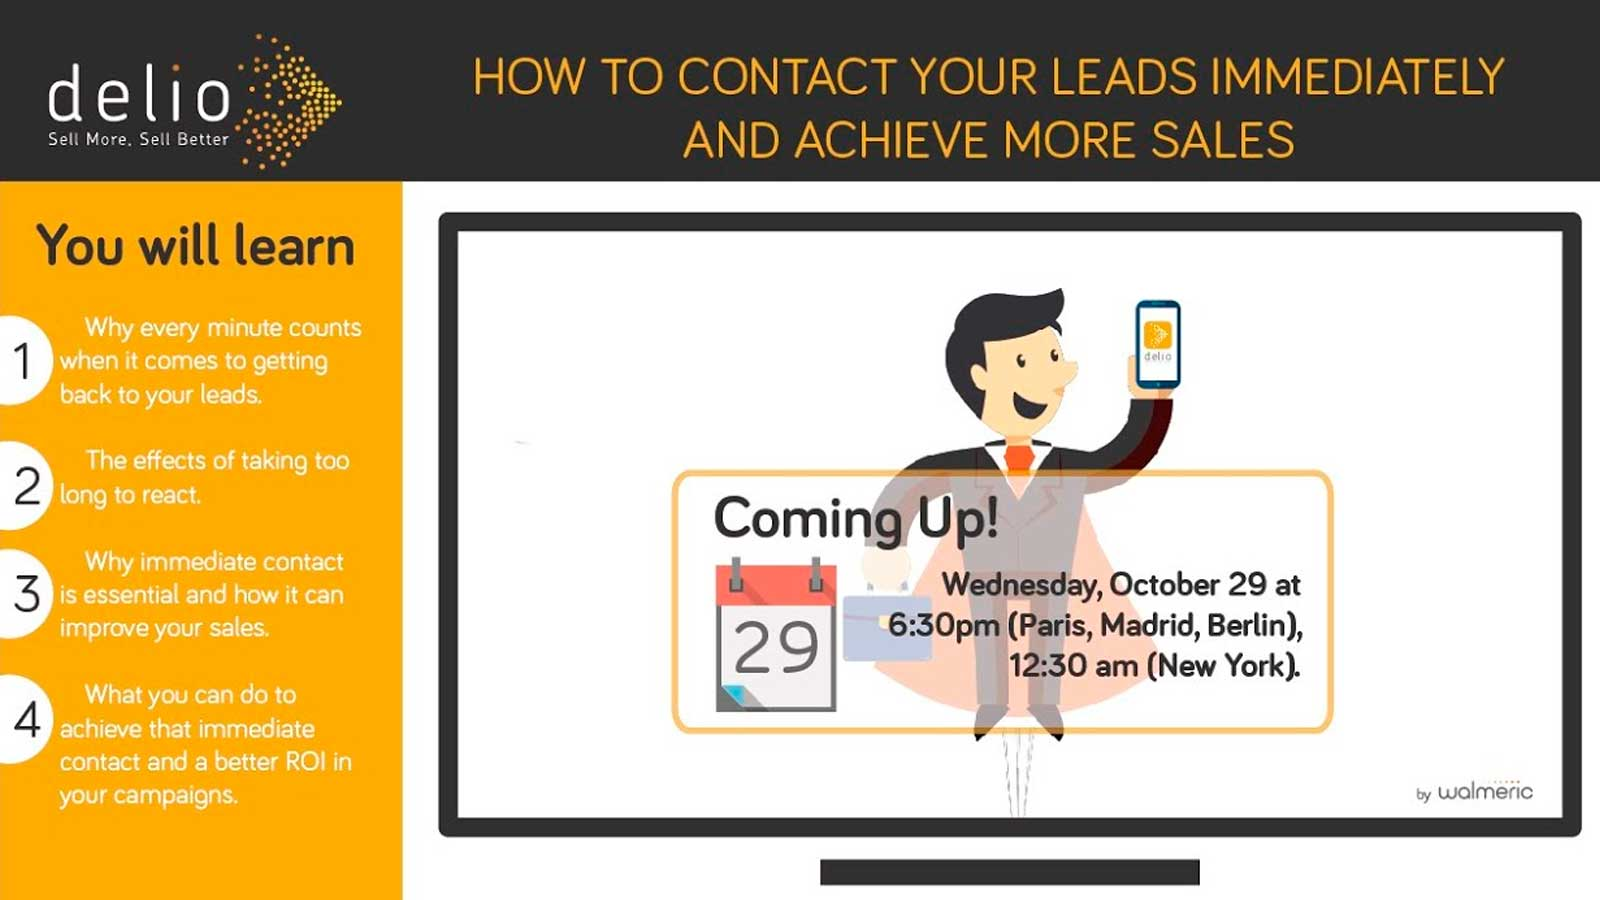 webinar-how-to-contact-your-leads-immediately-and-achieve-more-sales